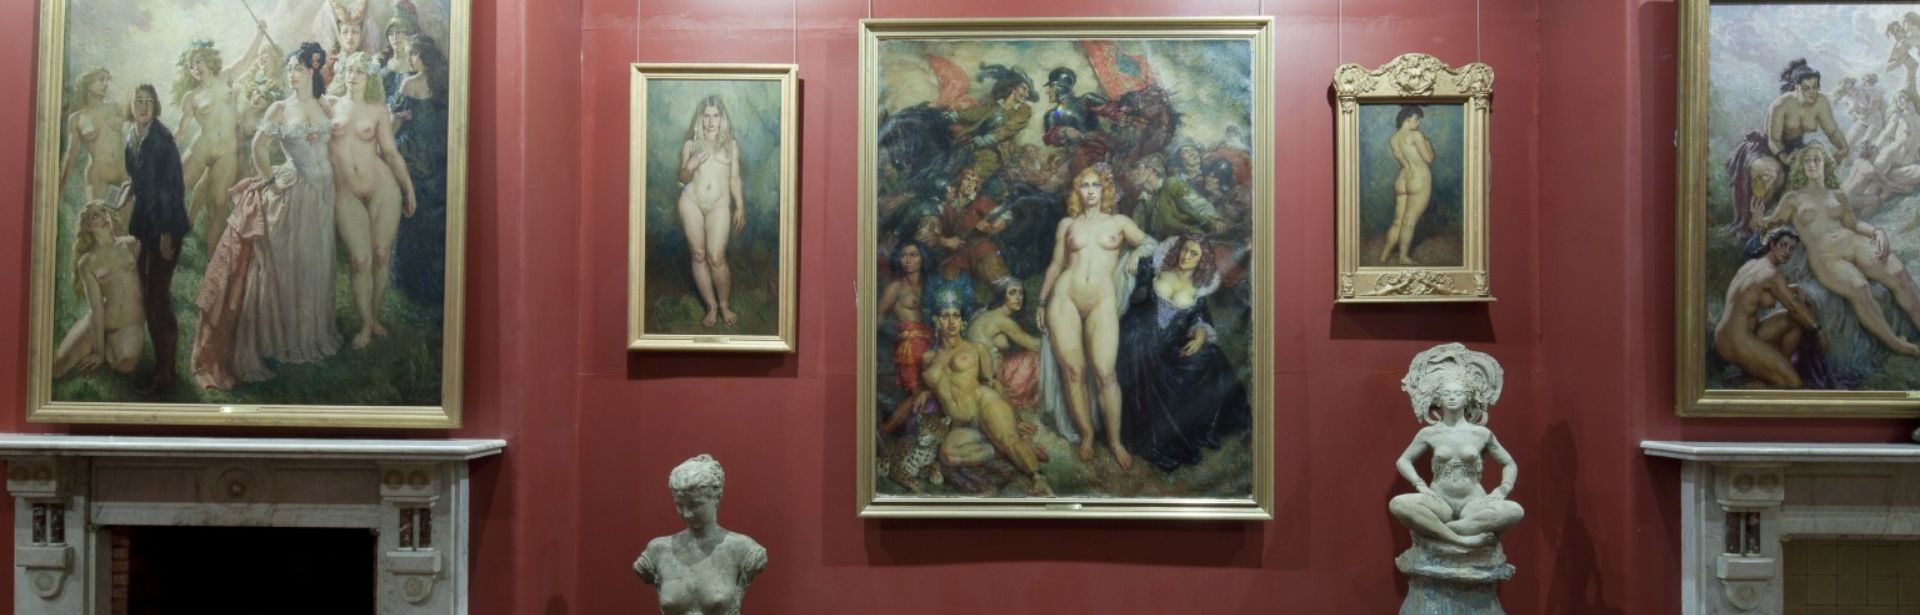 Explore the former home and story of an Australian art and literature icon in the heart of the Blue Mountains Take in the gallery and gardens celebrating the life and legacy of Norman Lindsay